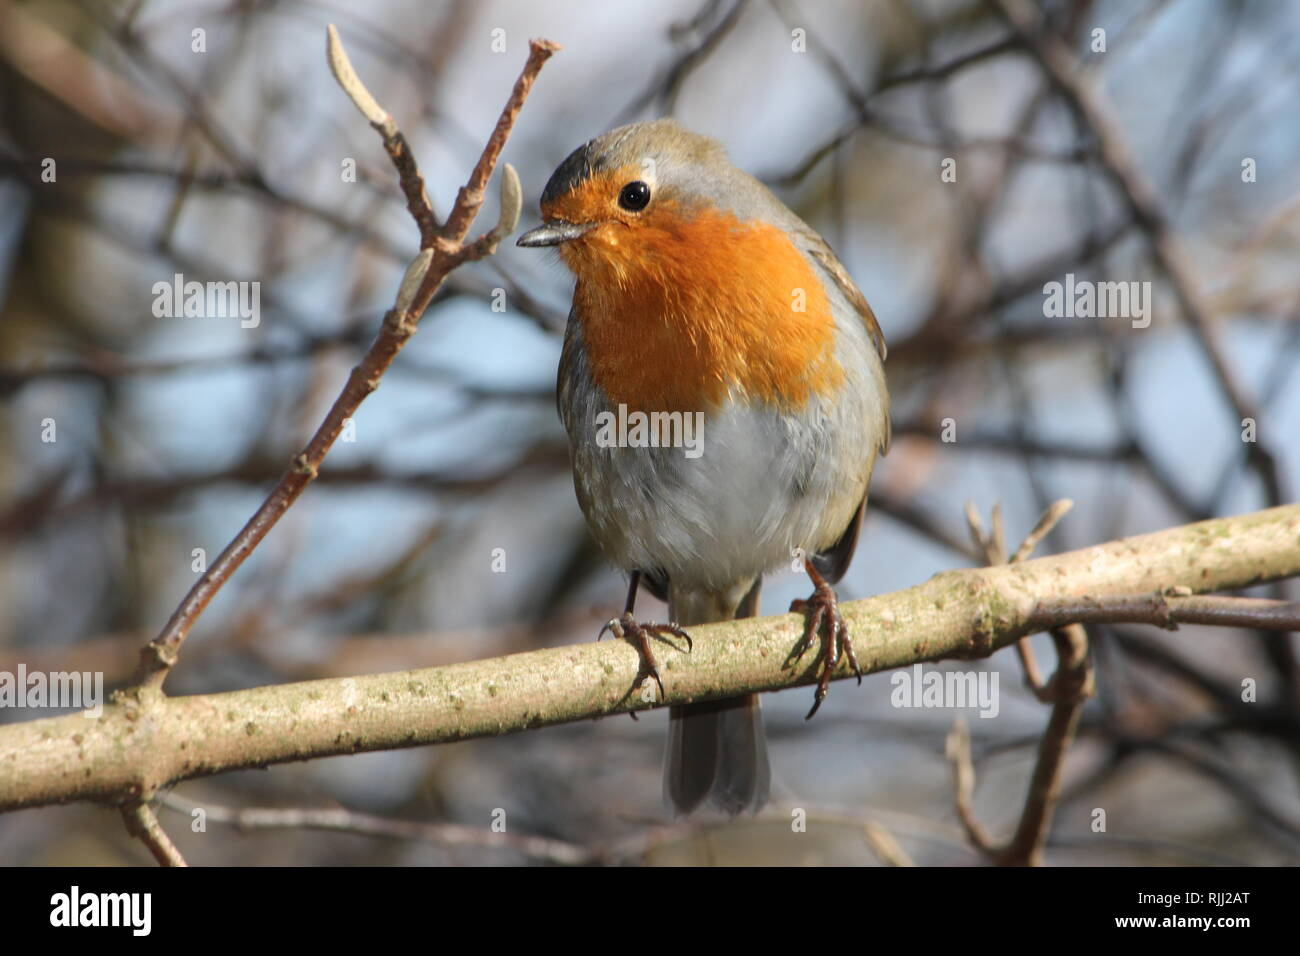 European Robin (Erithacus rubecula) at a Park in Recklinghausen, Germany - Stock Image